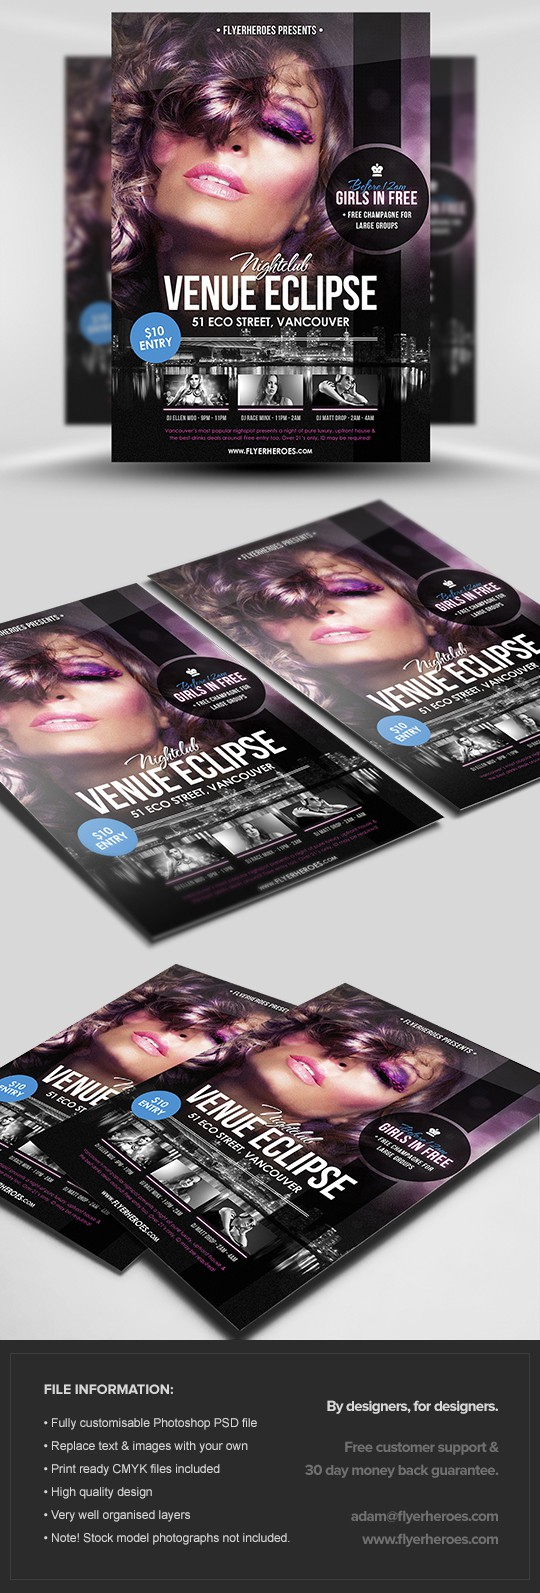 Venue Eclipse Flyer Template